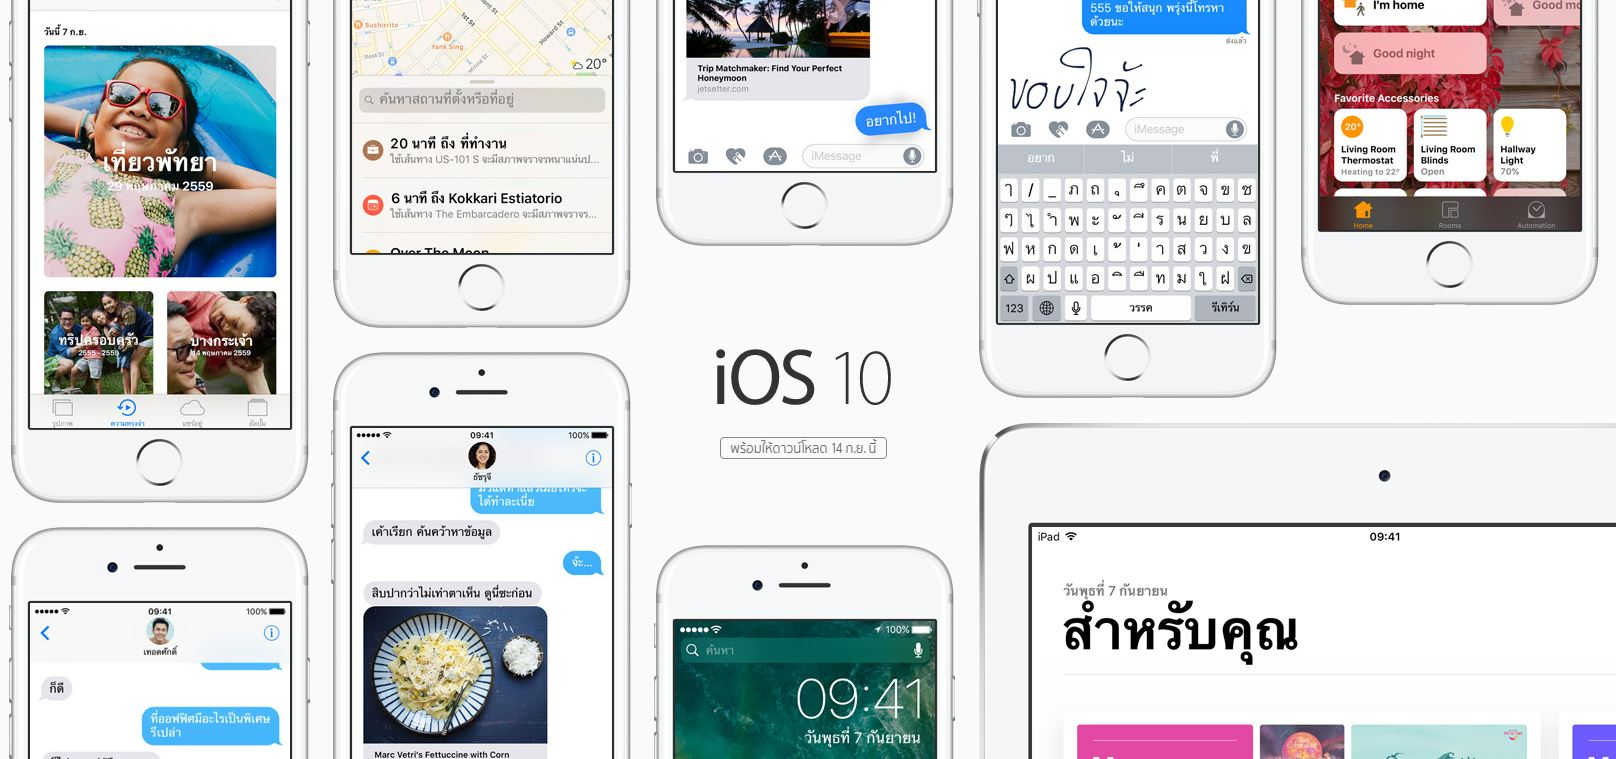 ios10 official update available